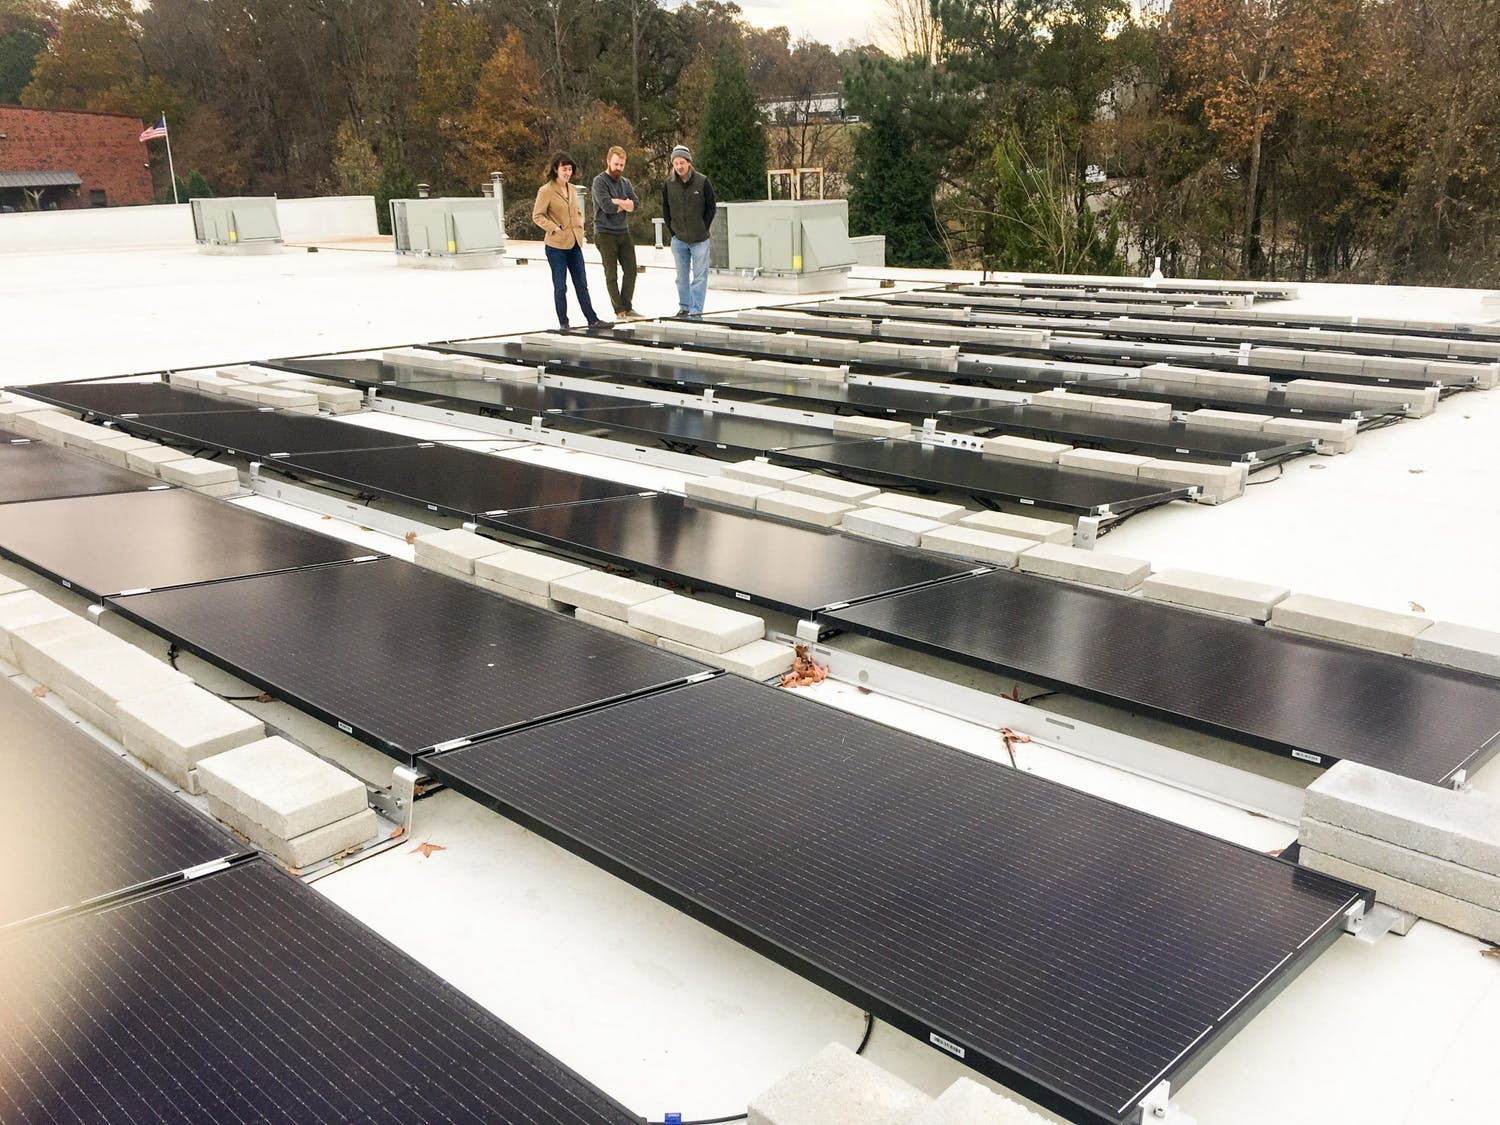 Joe Van Gogh is adding solar panels to the roof of its roasting facility to create clean energy. Photo courtesy of Cindy Sellars.